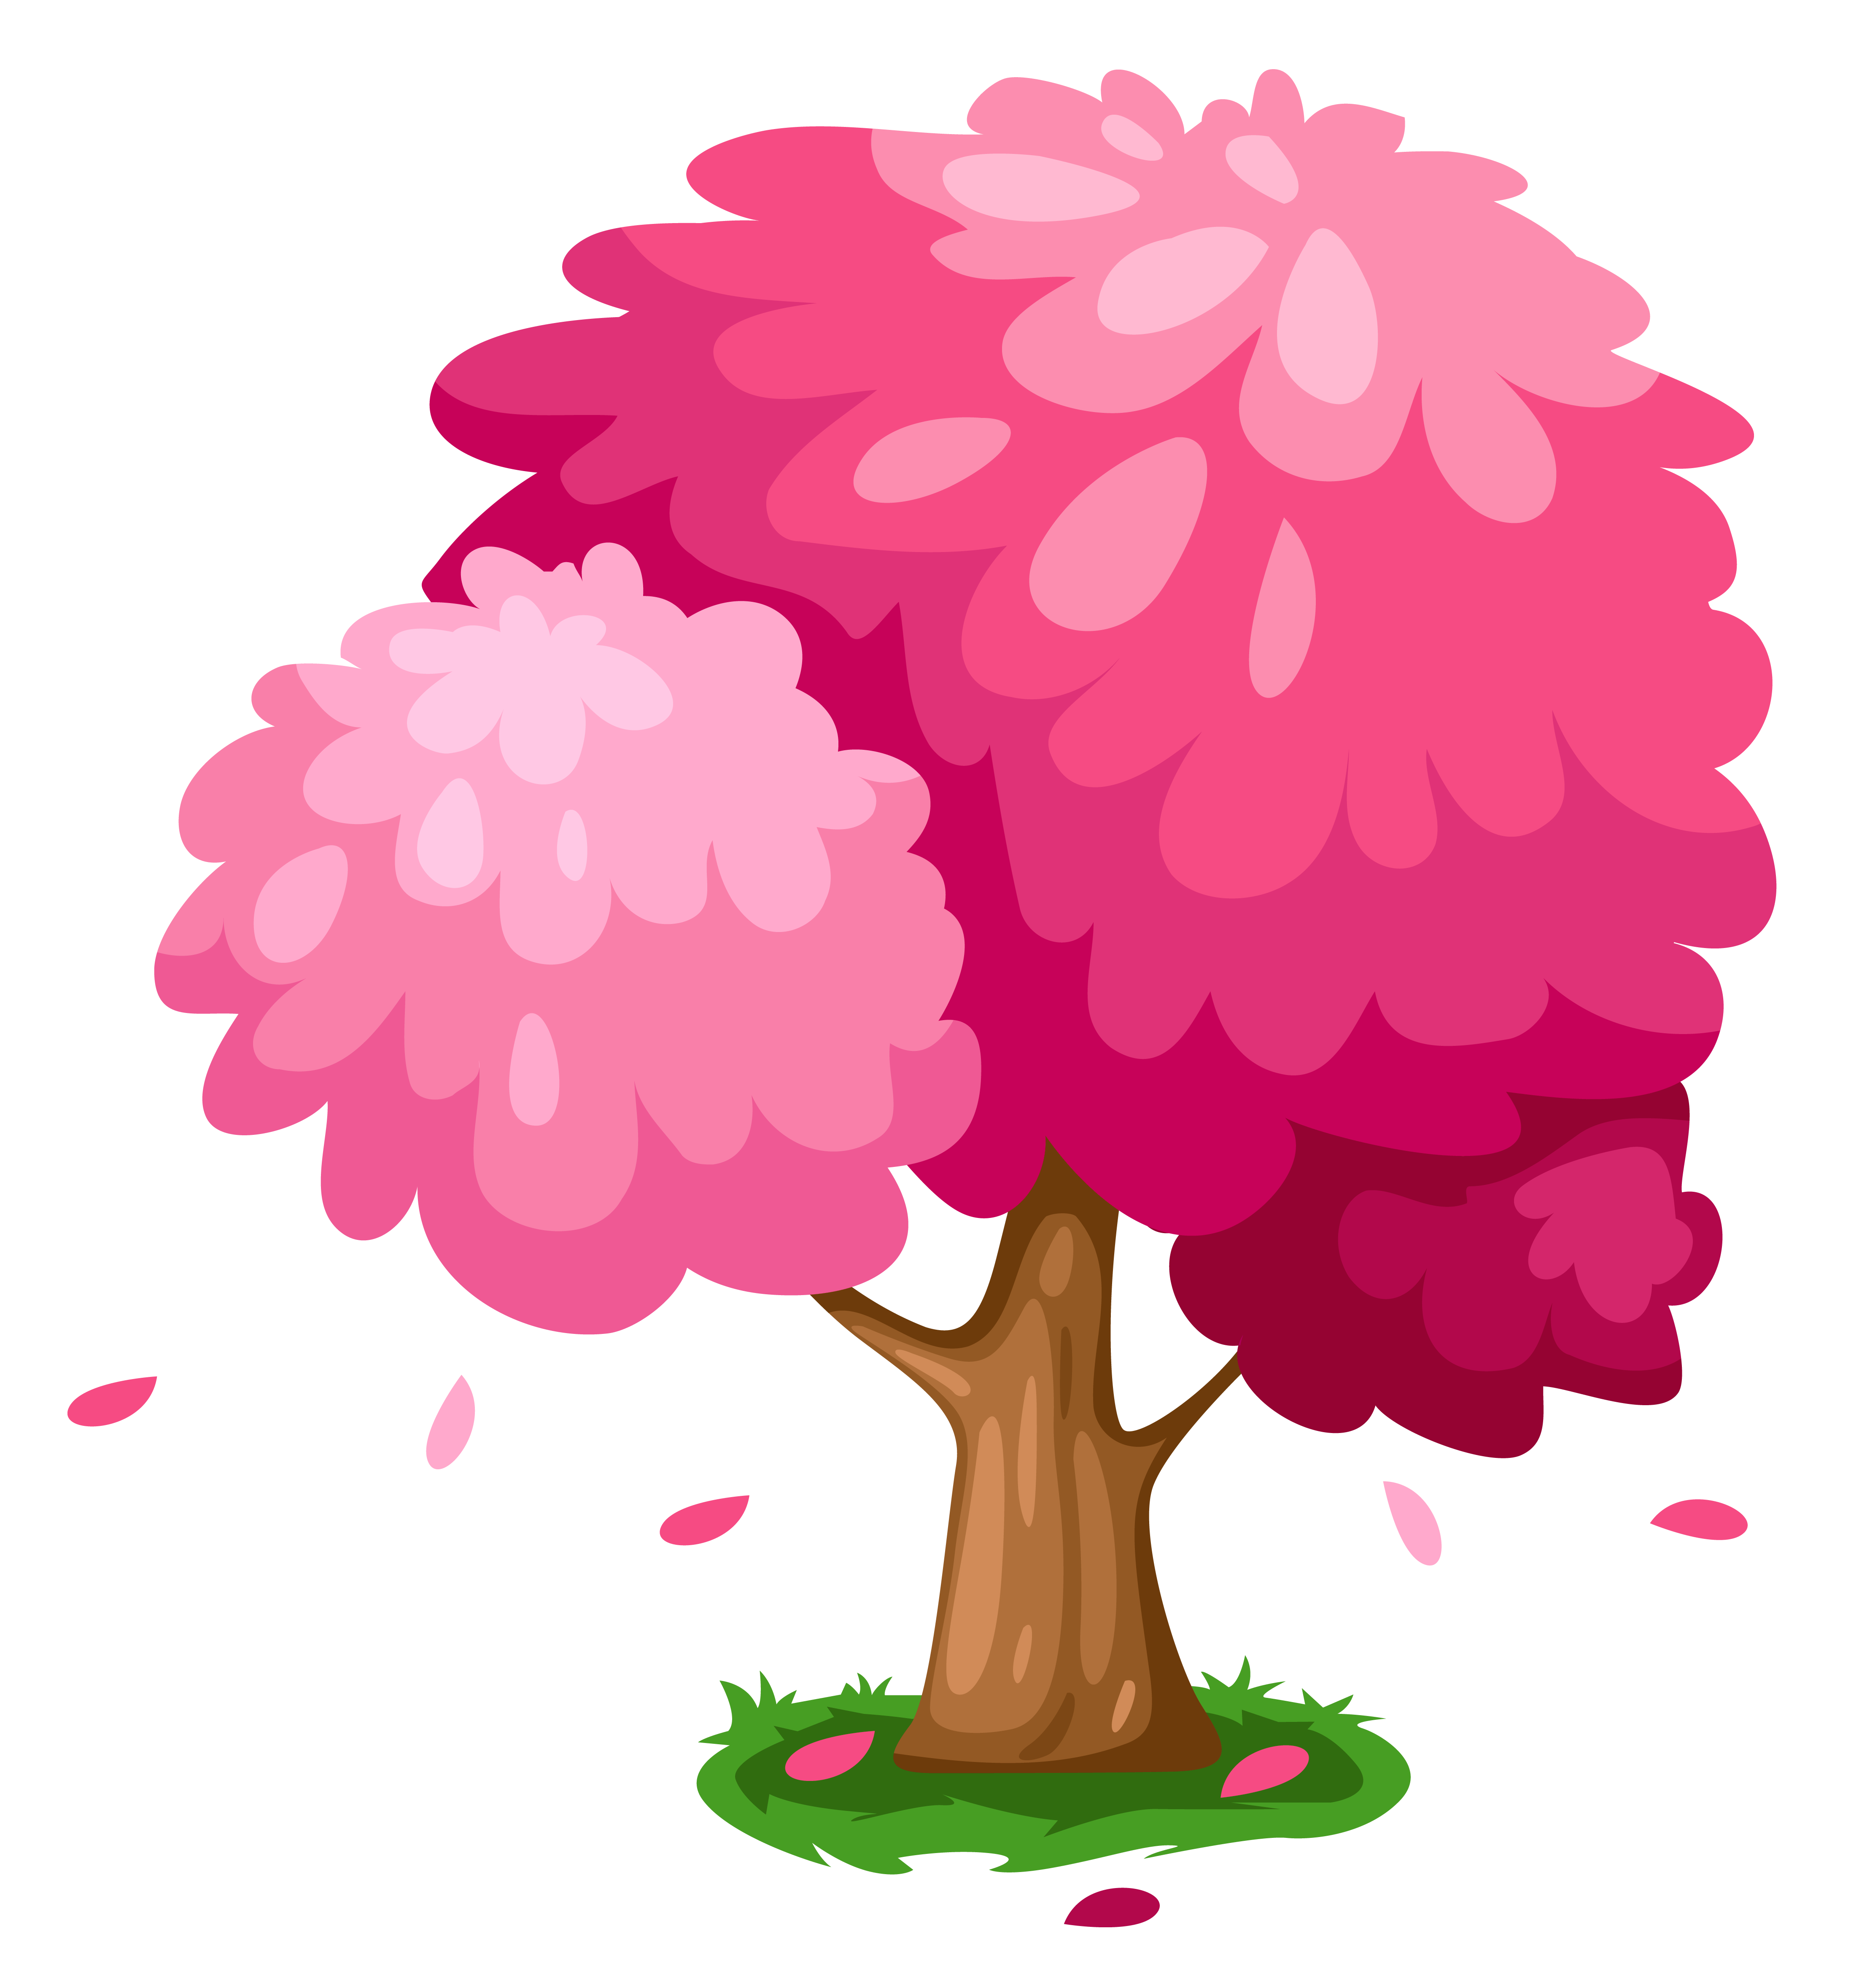 Tree clipart summer. Cute pink spring gallery